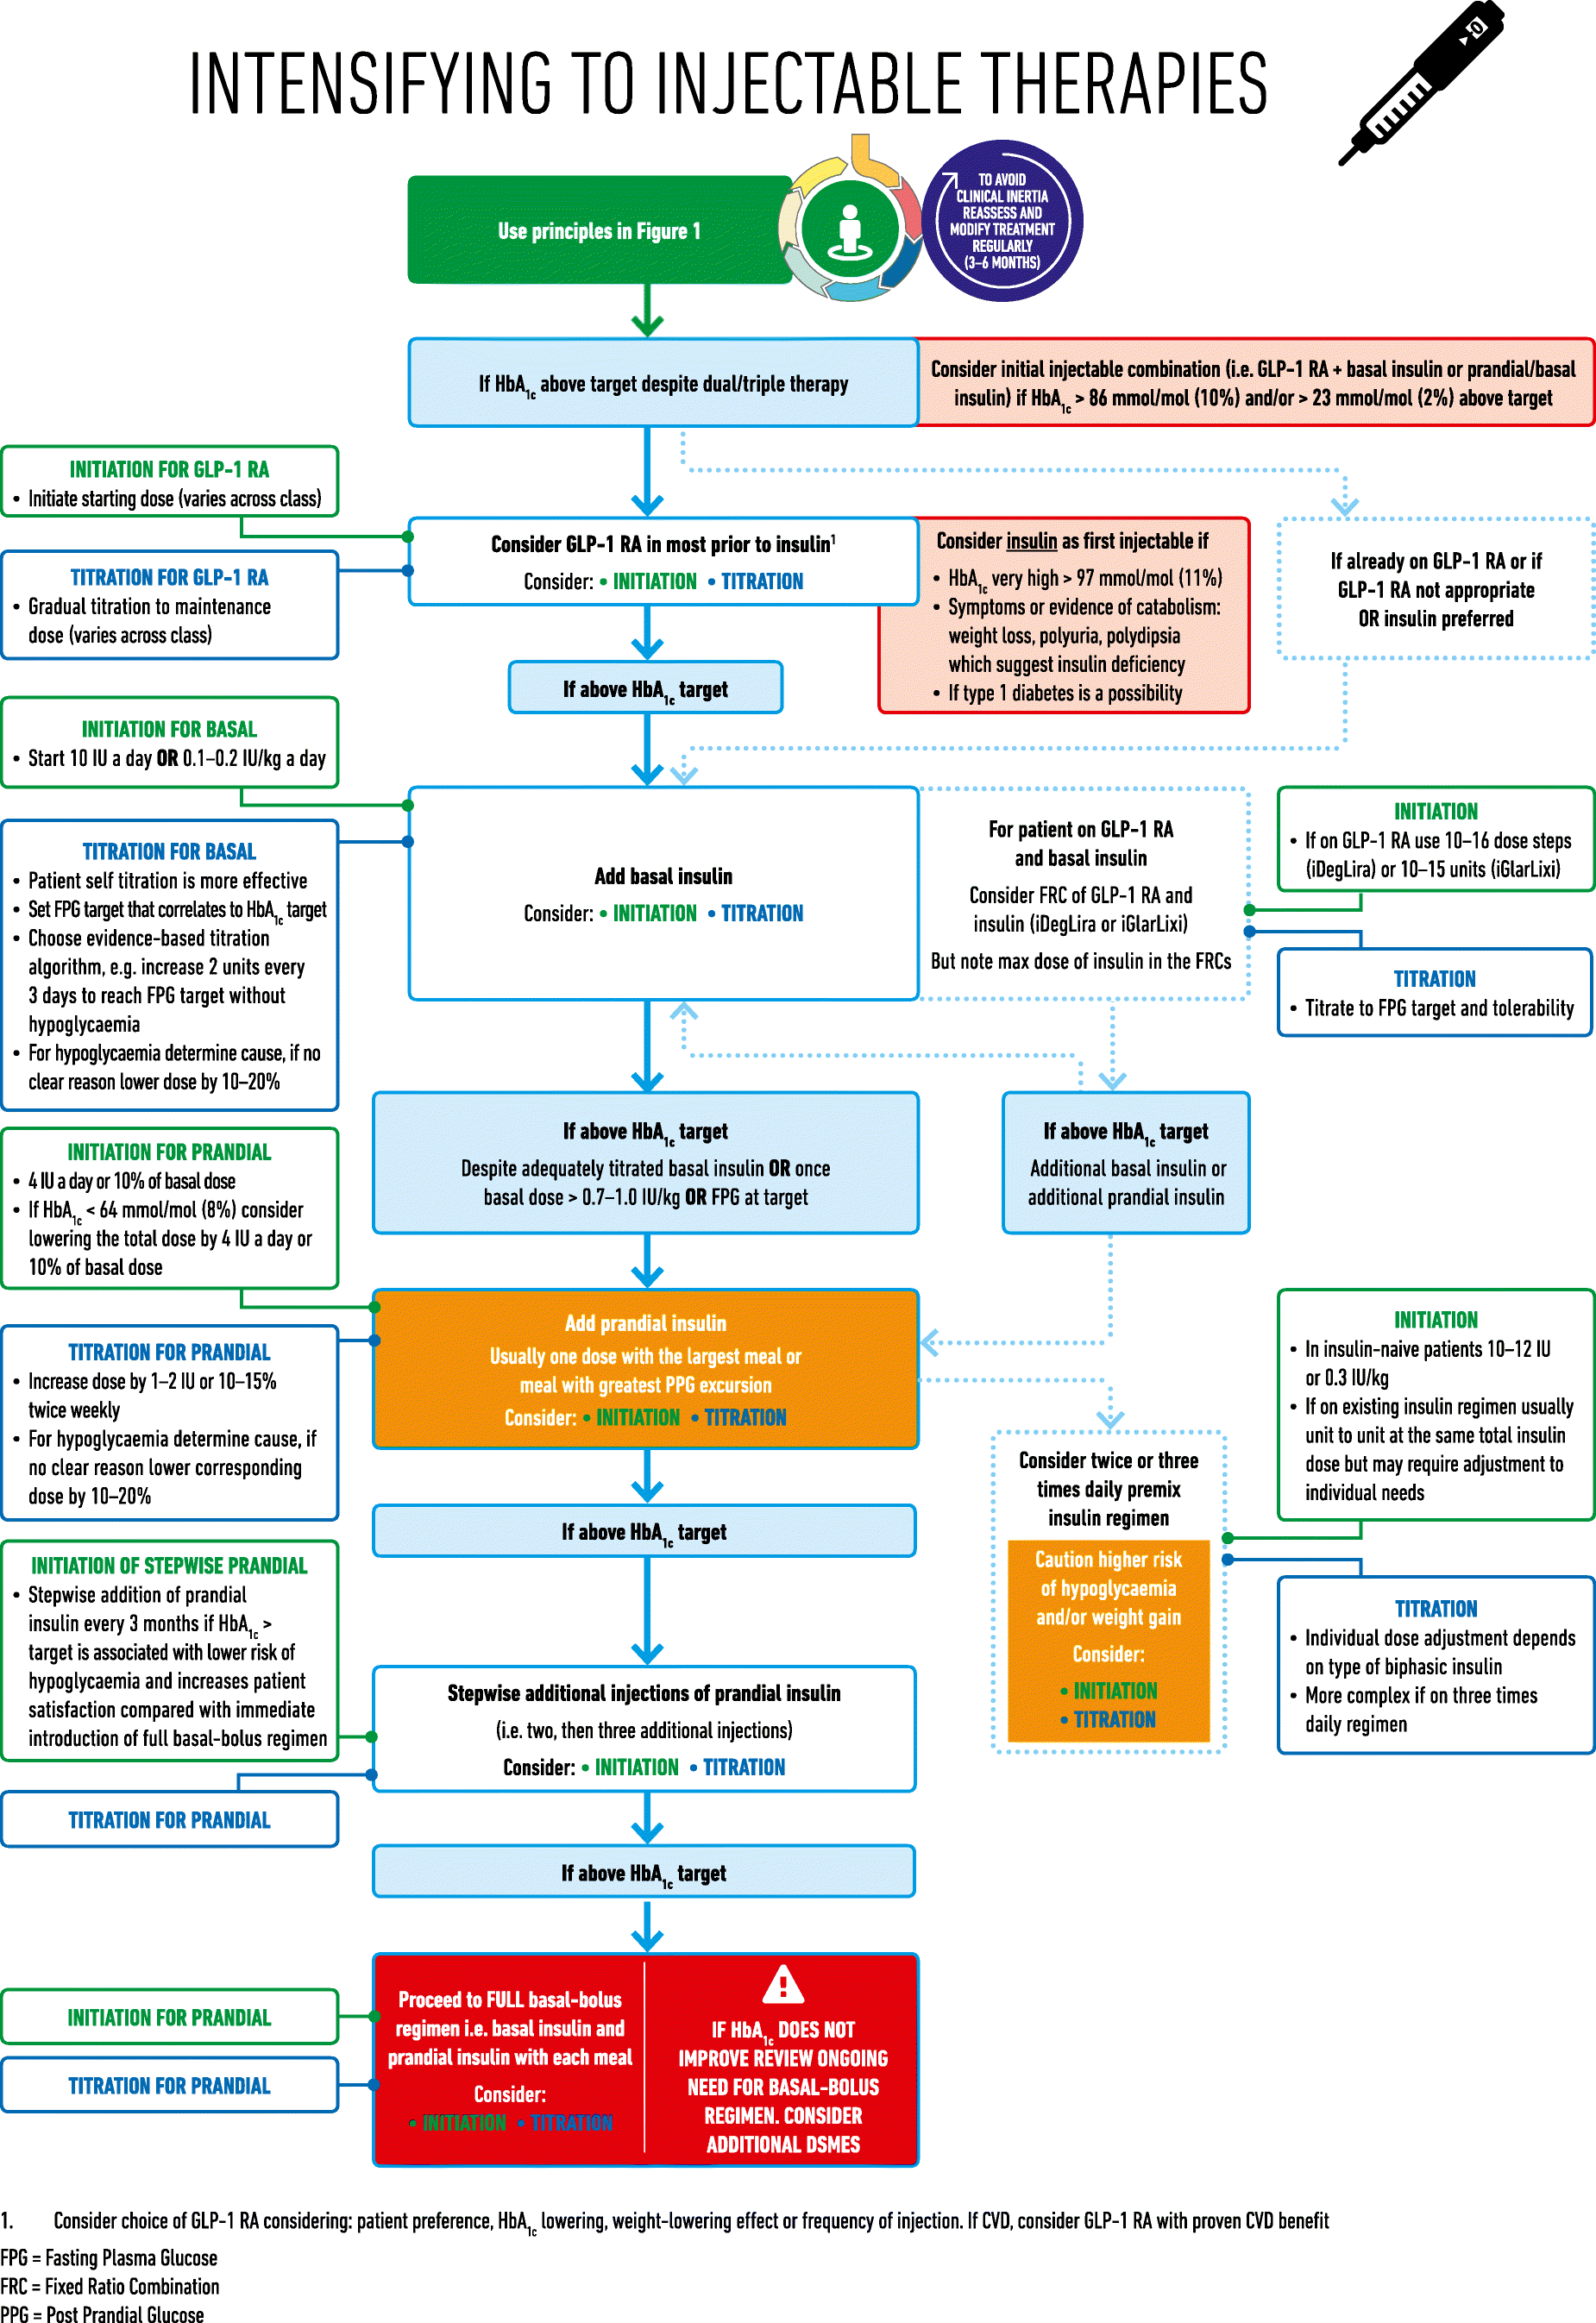 Management of hyperglycaemia in type 2 diabetes, 2018  A consensus